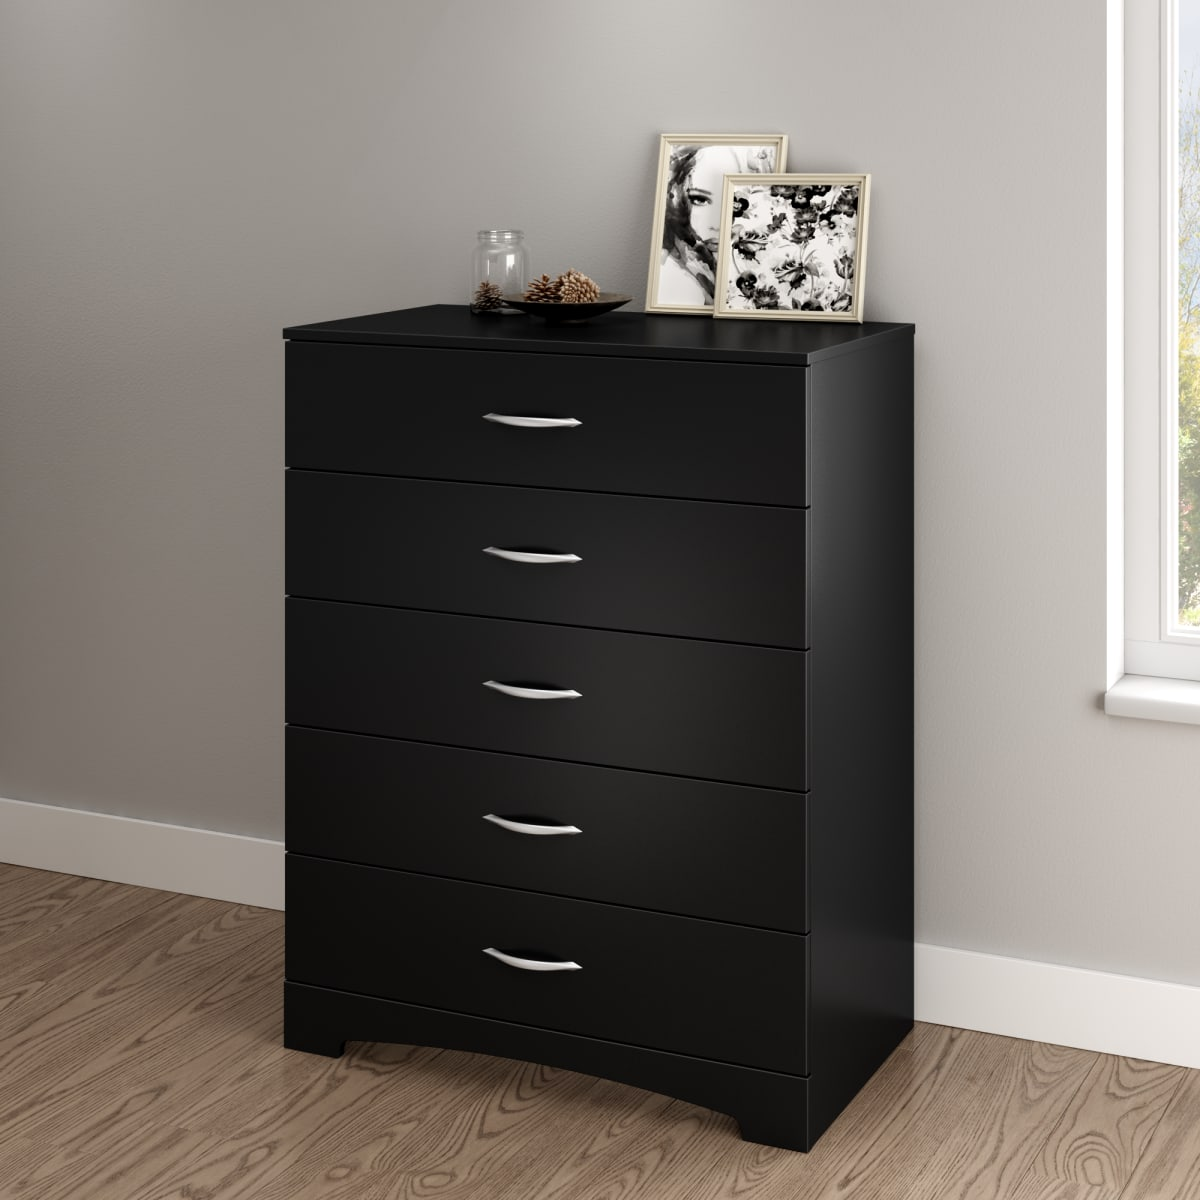 Step One 5 Drawer Chest Chest Master Bedroom Furniture Products South Shore Furniture Us Furniture For Sale Designed And Manufactured In North America